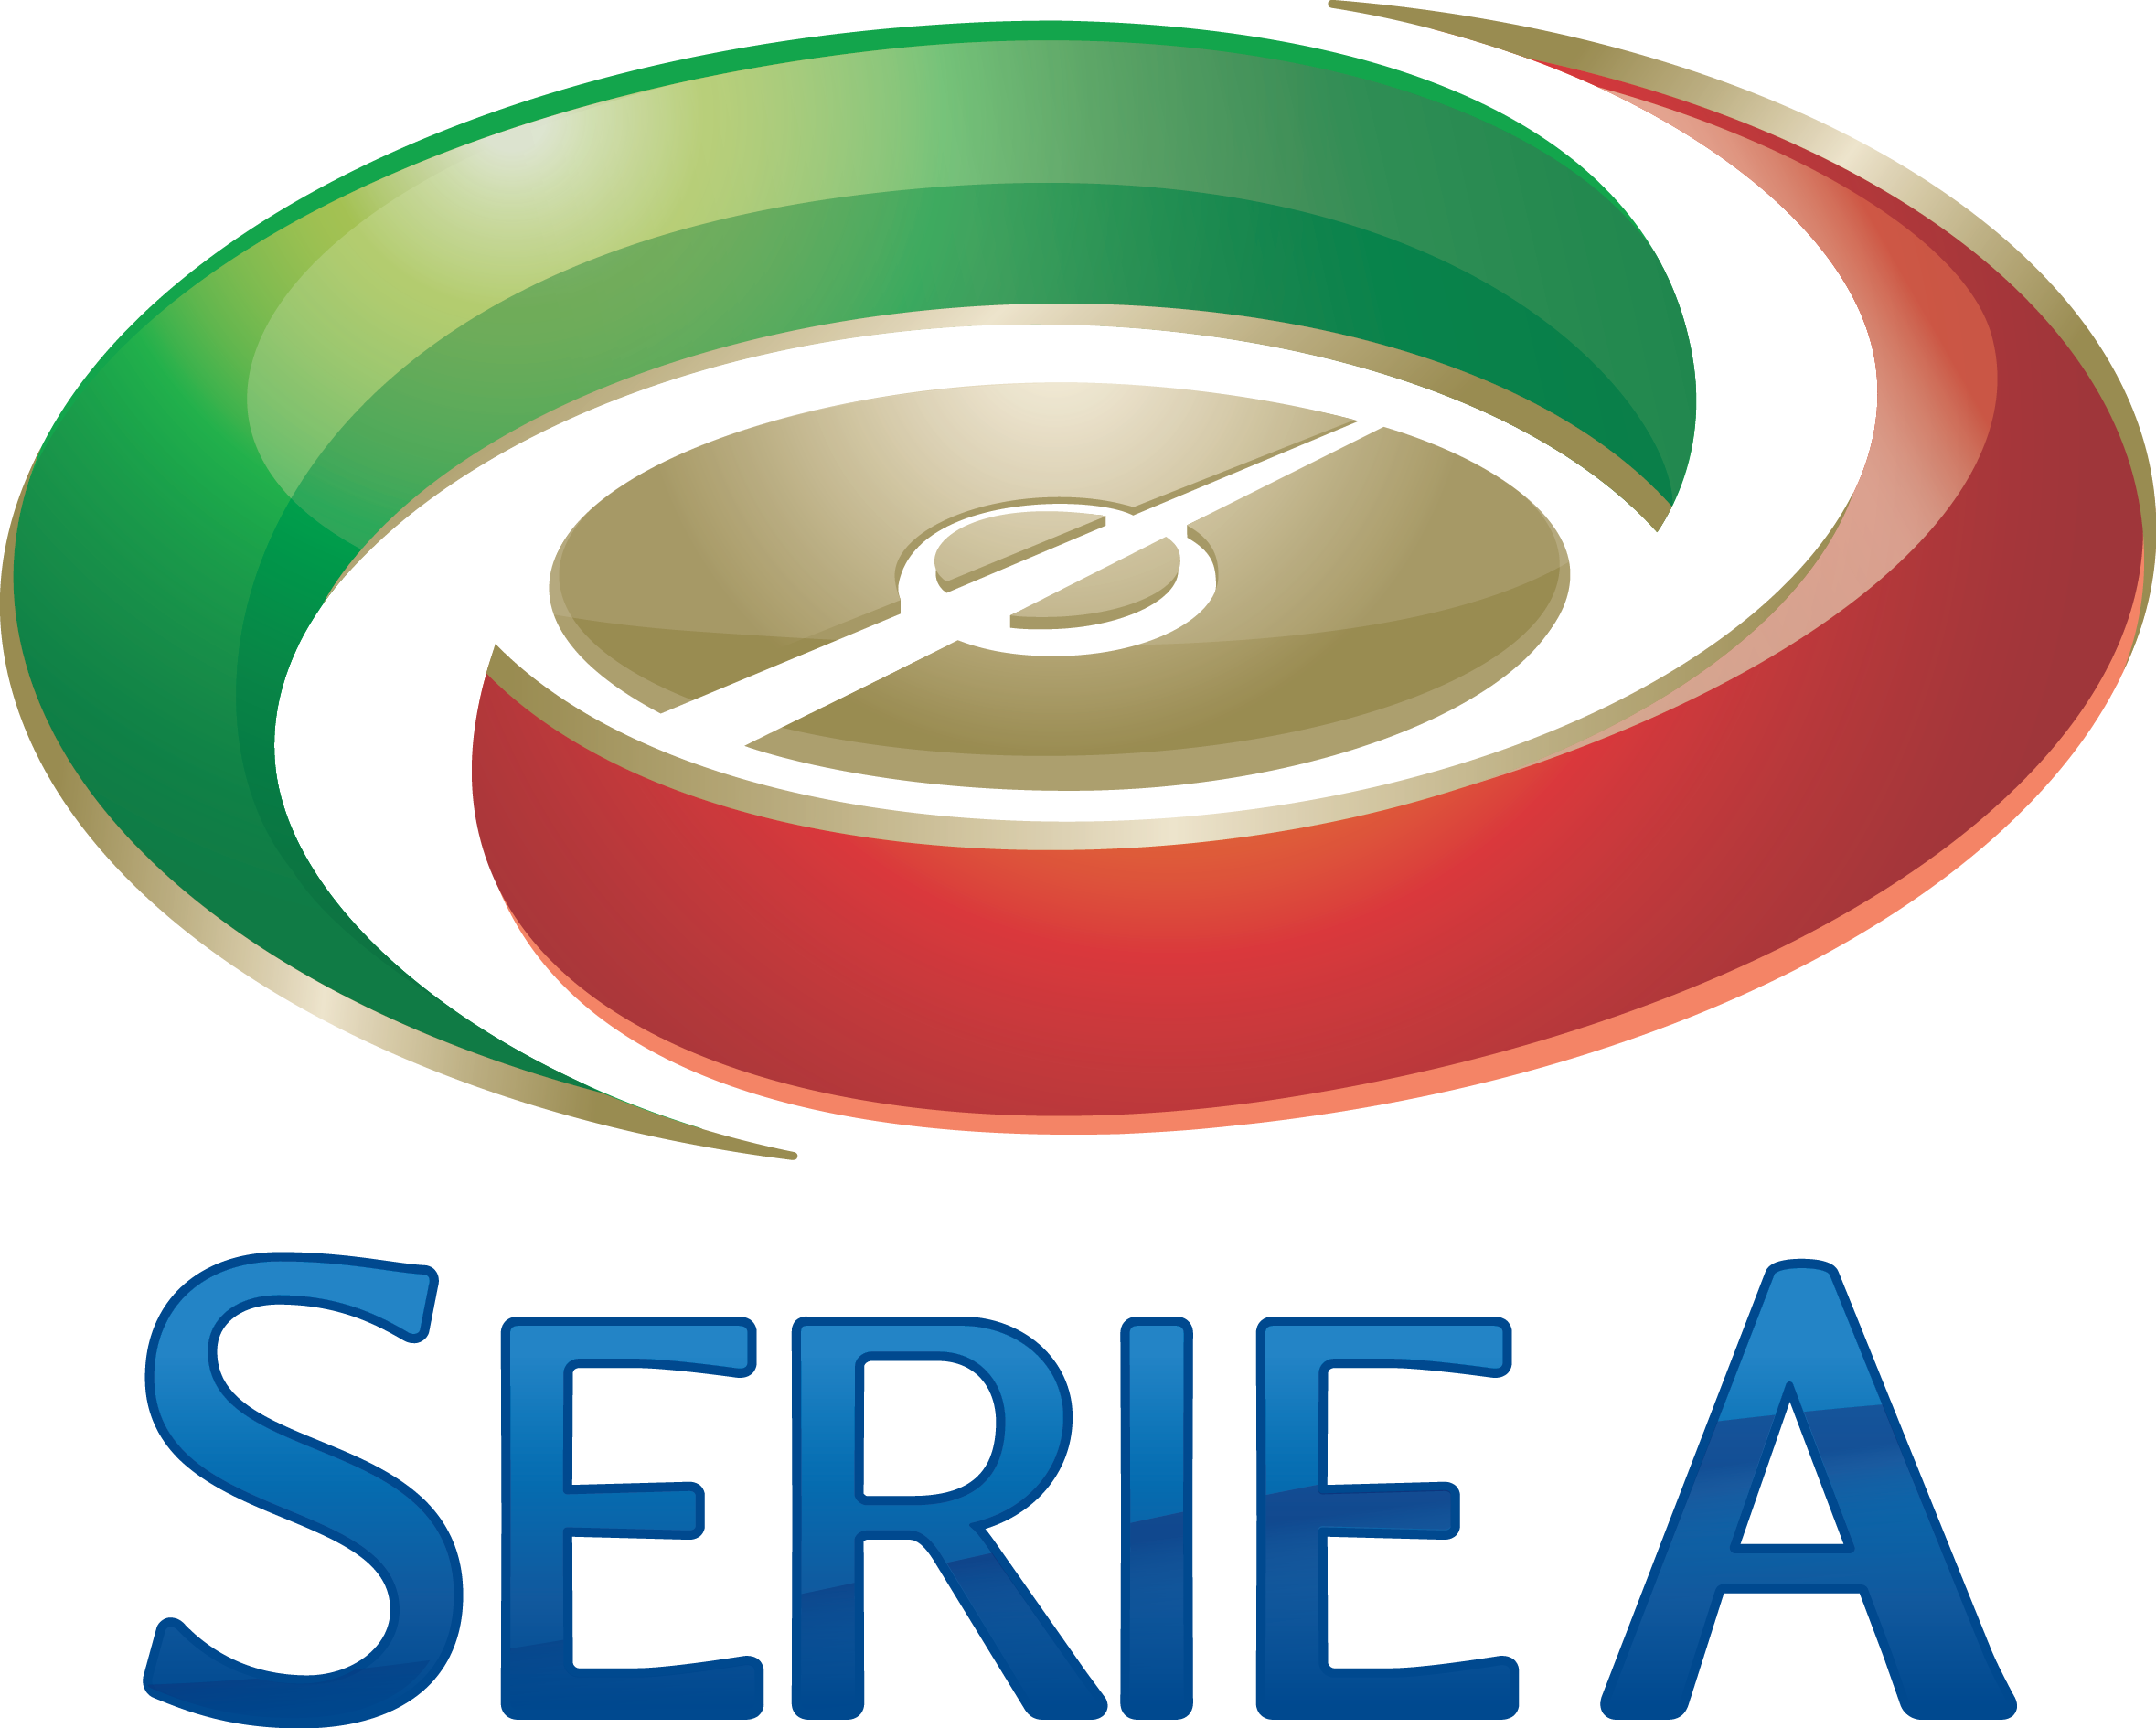 Chievo vs AS Roma zusammenfassung und tor video 08/03/2015